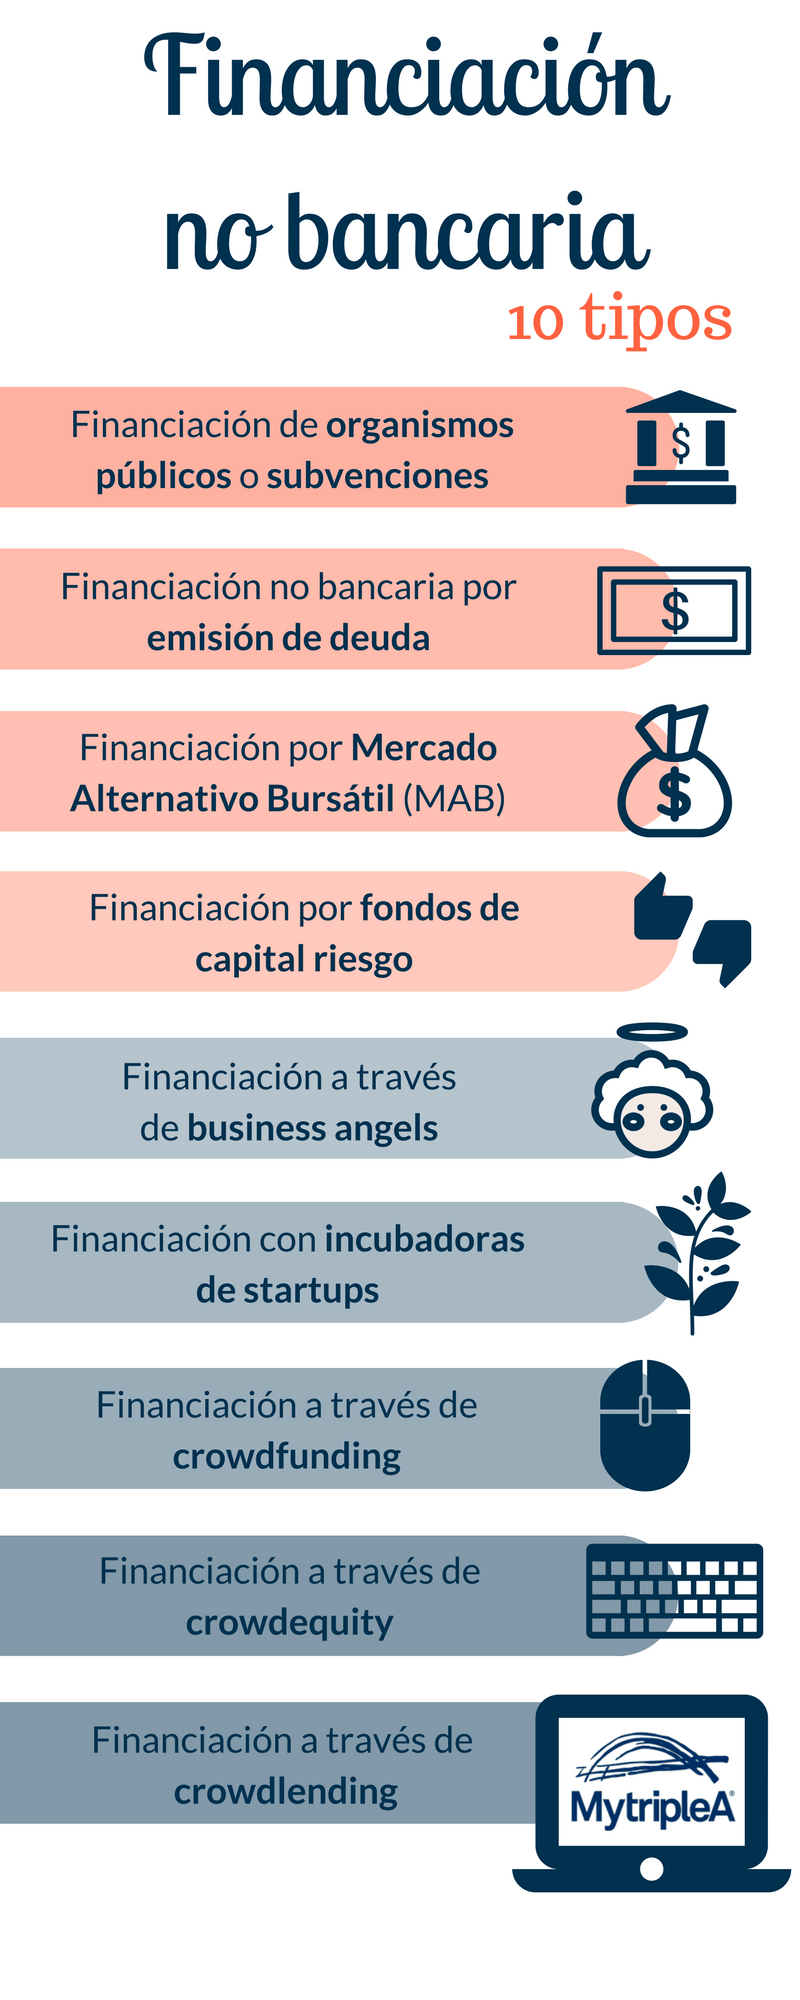 Financiación no bancaria